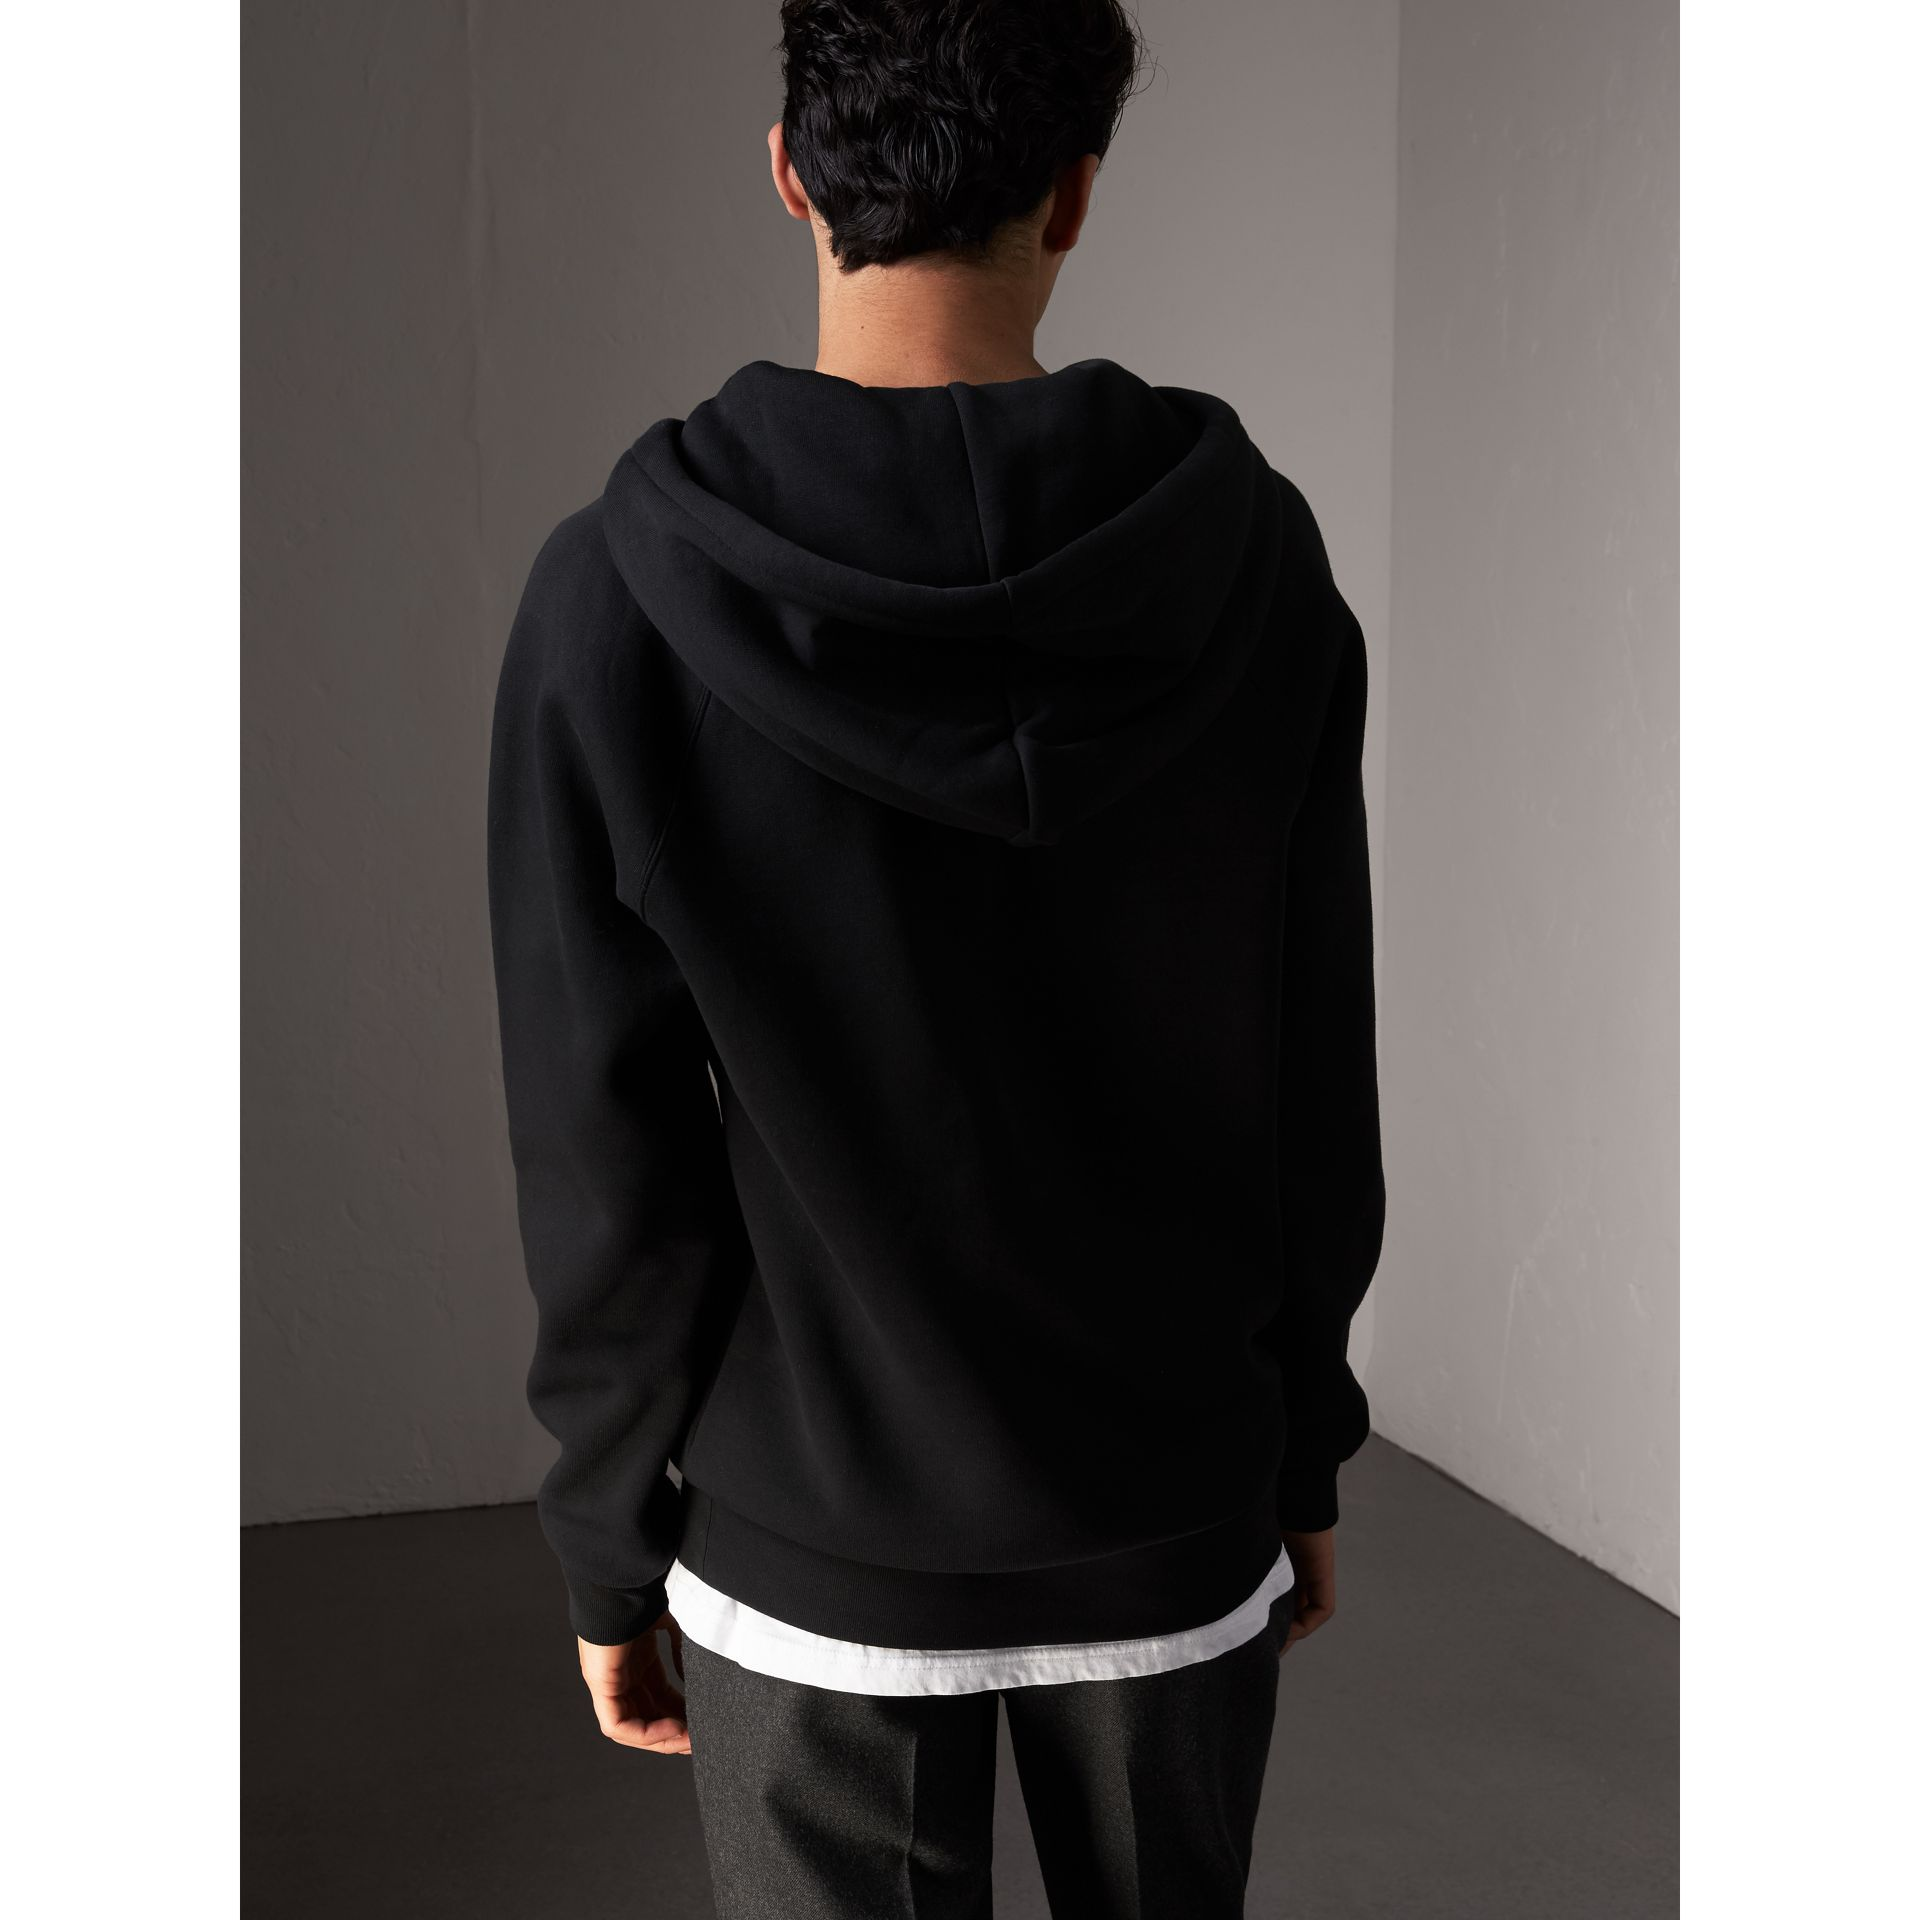 Embroidered Hooded Sweatshirt in Black - Men | Burberry - gallery image 2